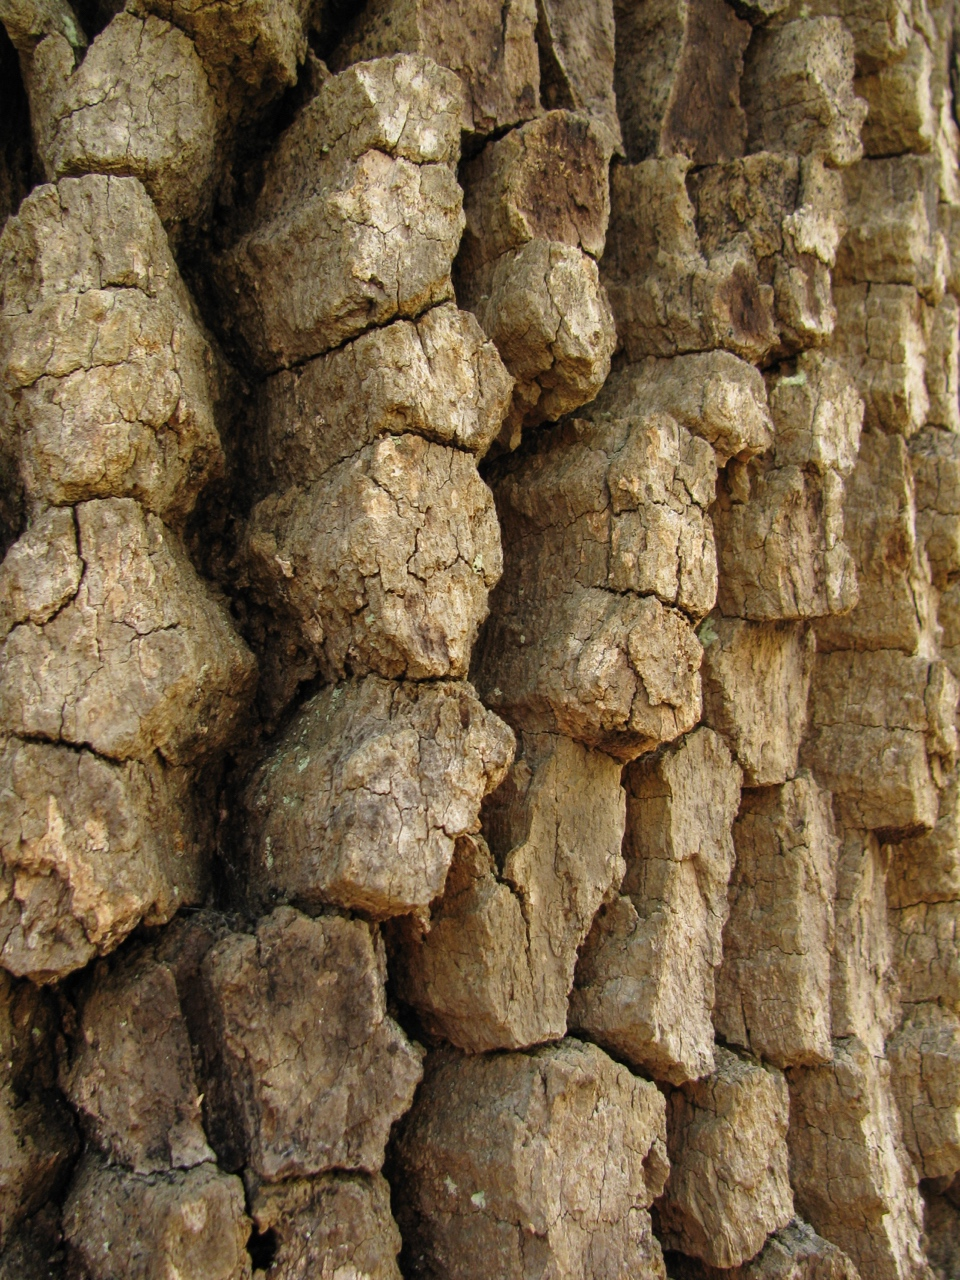 The Scientific Name is Diospyros virginiana. You will likely hear them called Persimmon, Possum Apple, Possumwood. This picture shows the Prominent blocky rectangular bark on older specimens of Diospyros virginiana